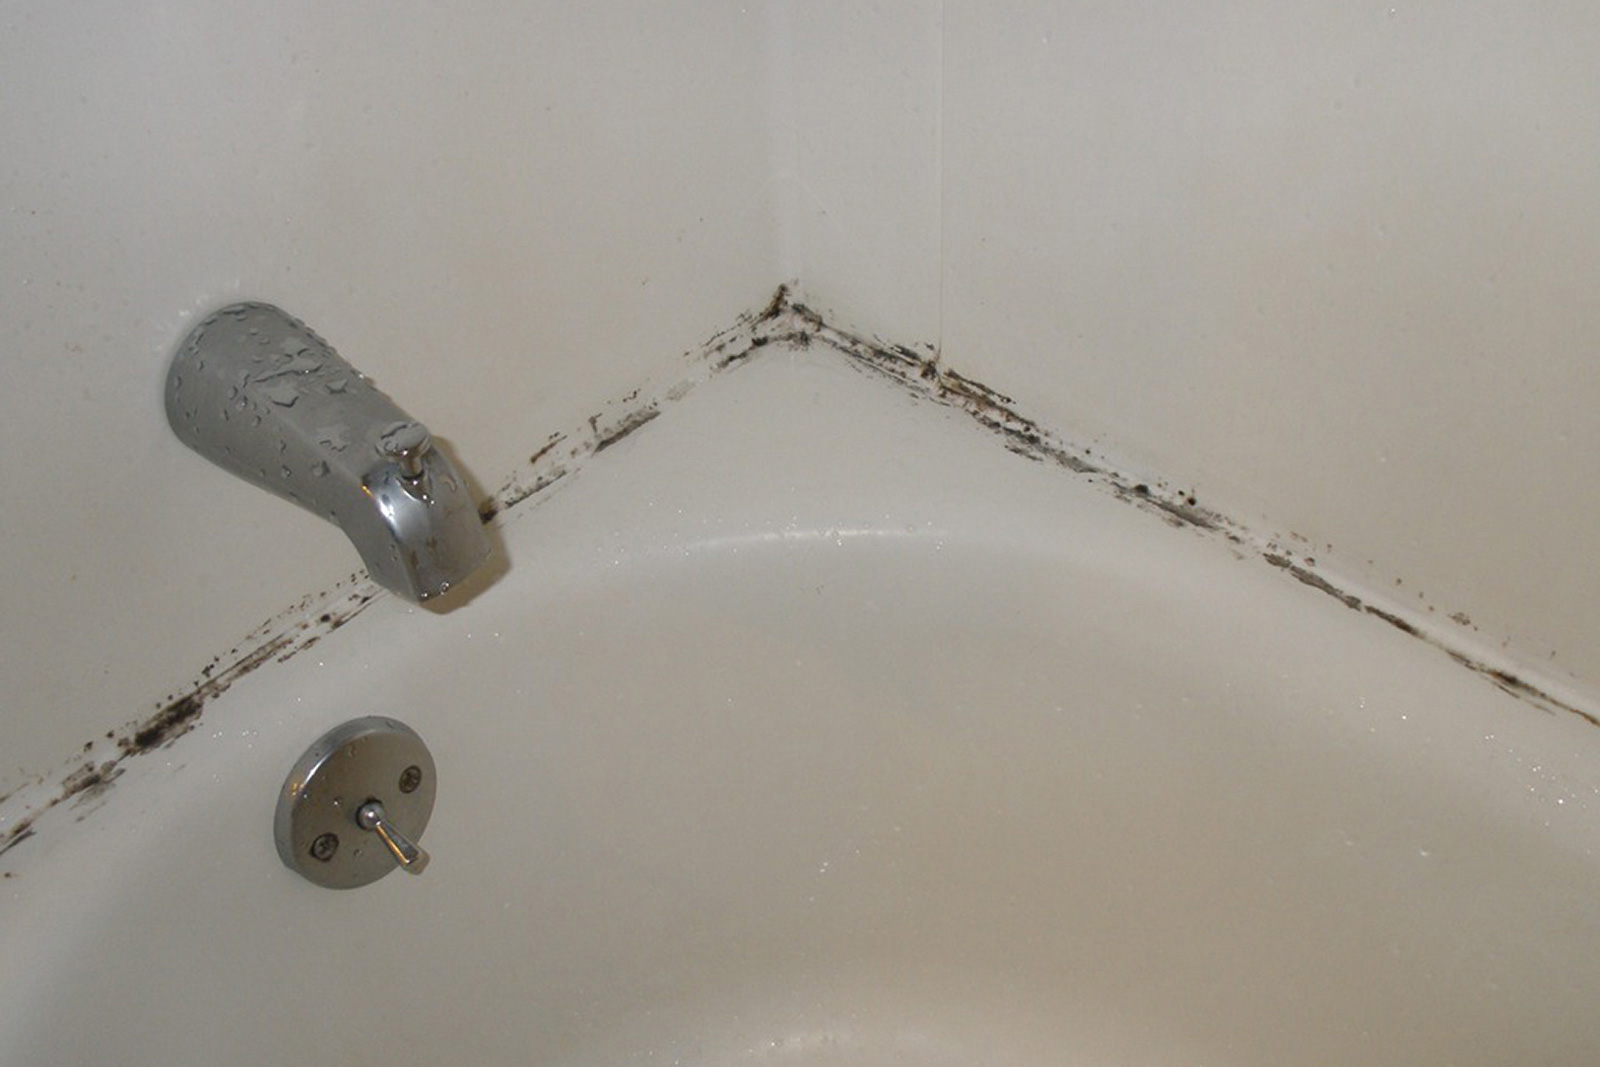 Bathroom Mold How To Kill Bathroom Mold Mold On Bathroom Ceiling - Best thing to clean bathtub